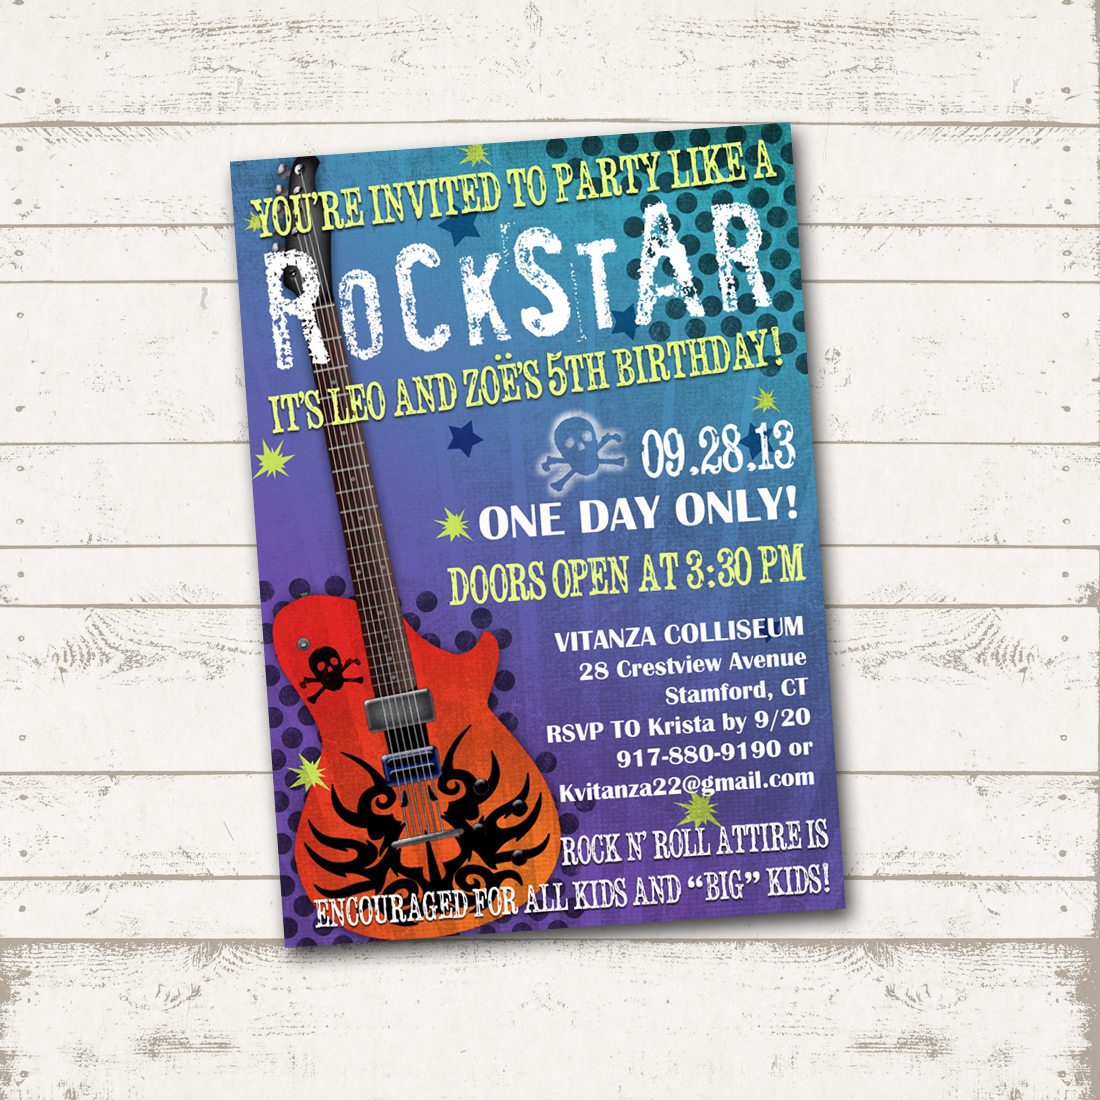 Valerie Pullam Designs | Rockstar Birthday Invitation - Party like a ...